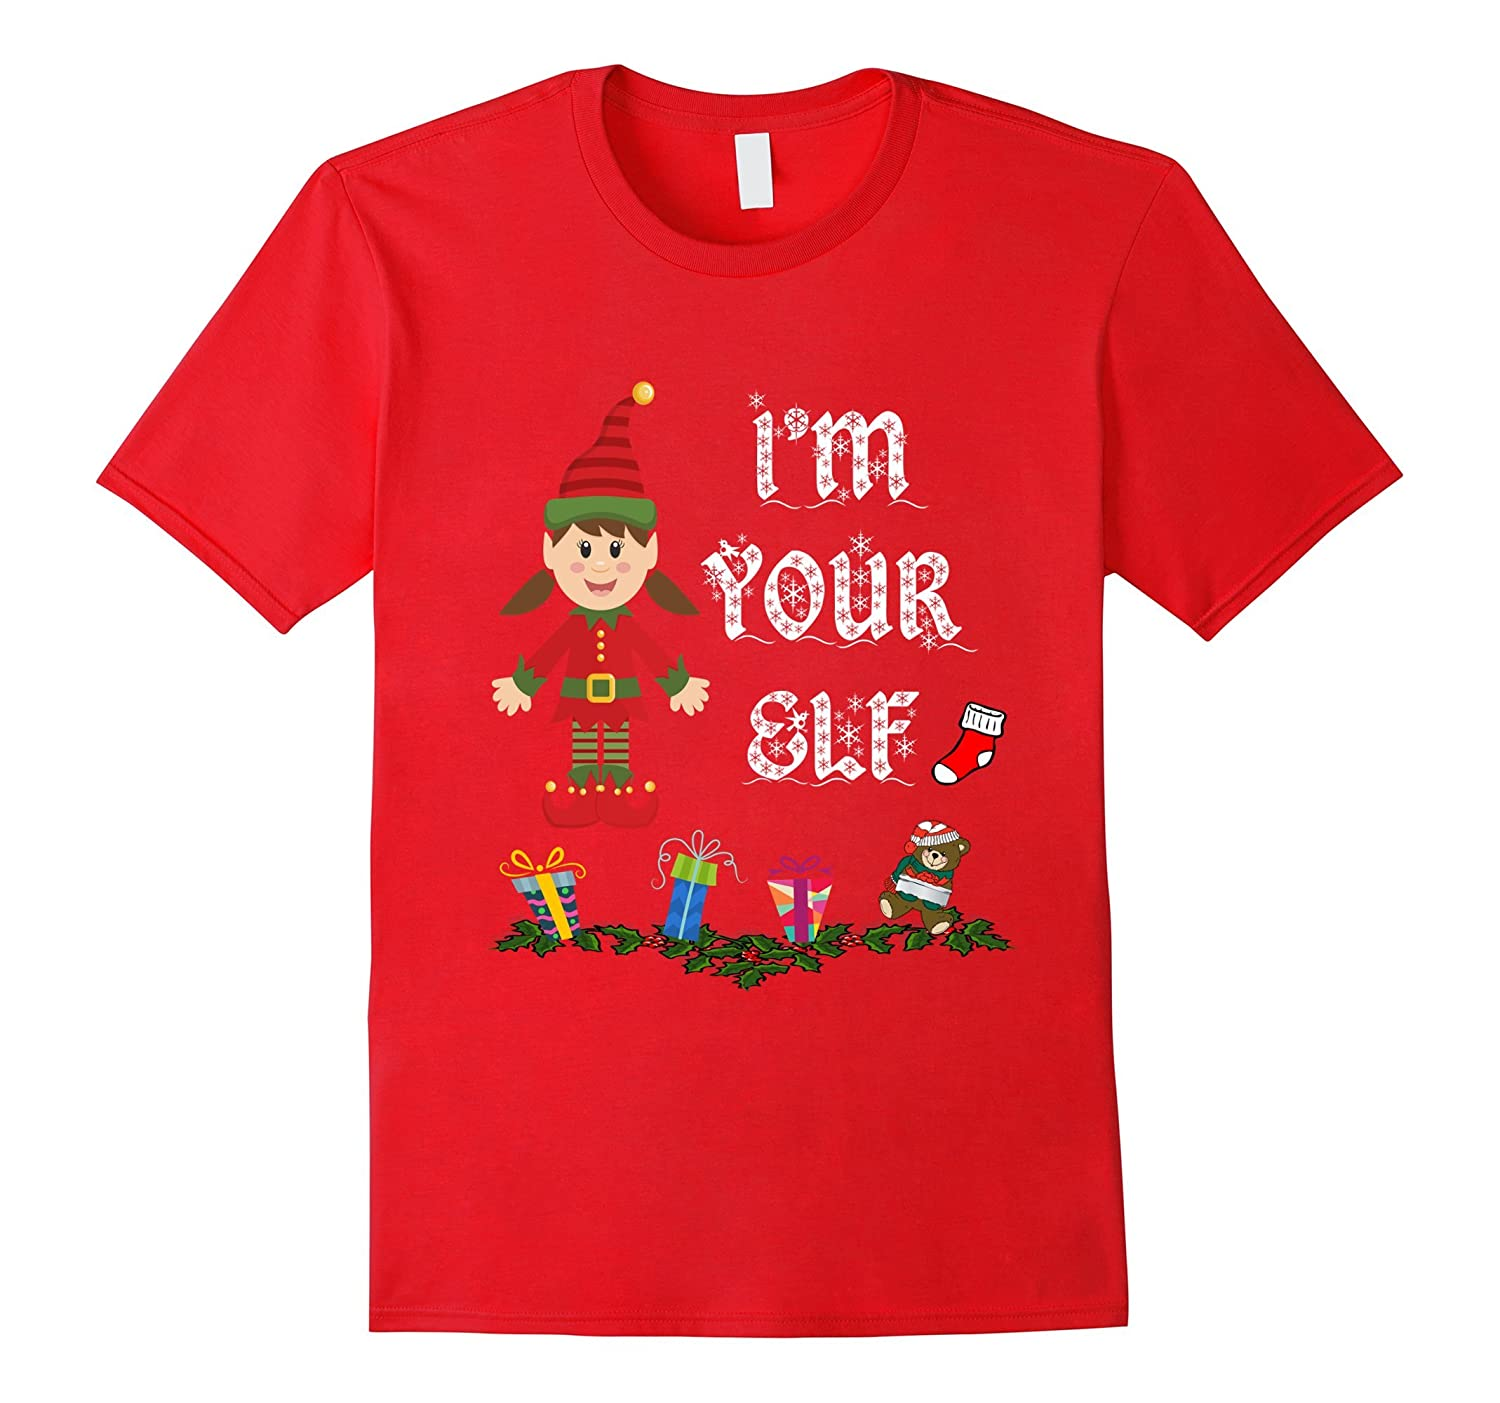 Matching Hers and His Christmas Funny Elf and Santa Shirts-ANZ